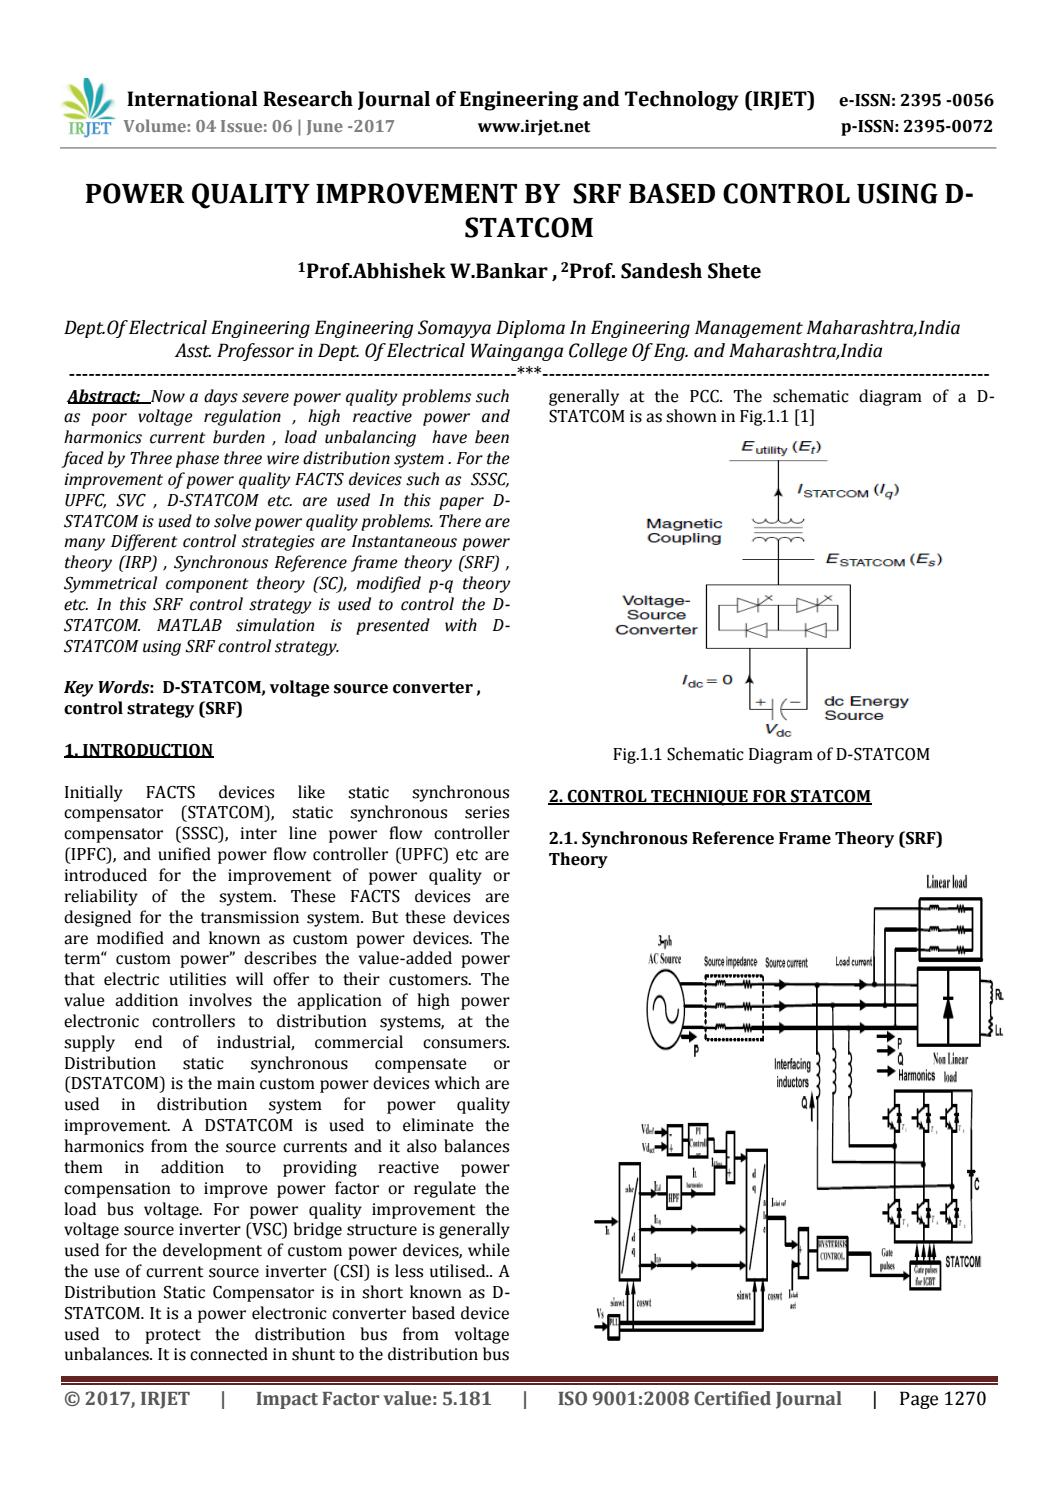 hight resolution of power quality improvement by srf based control using d statcom